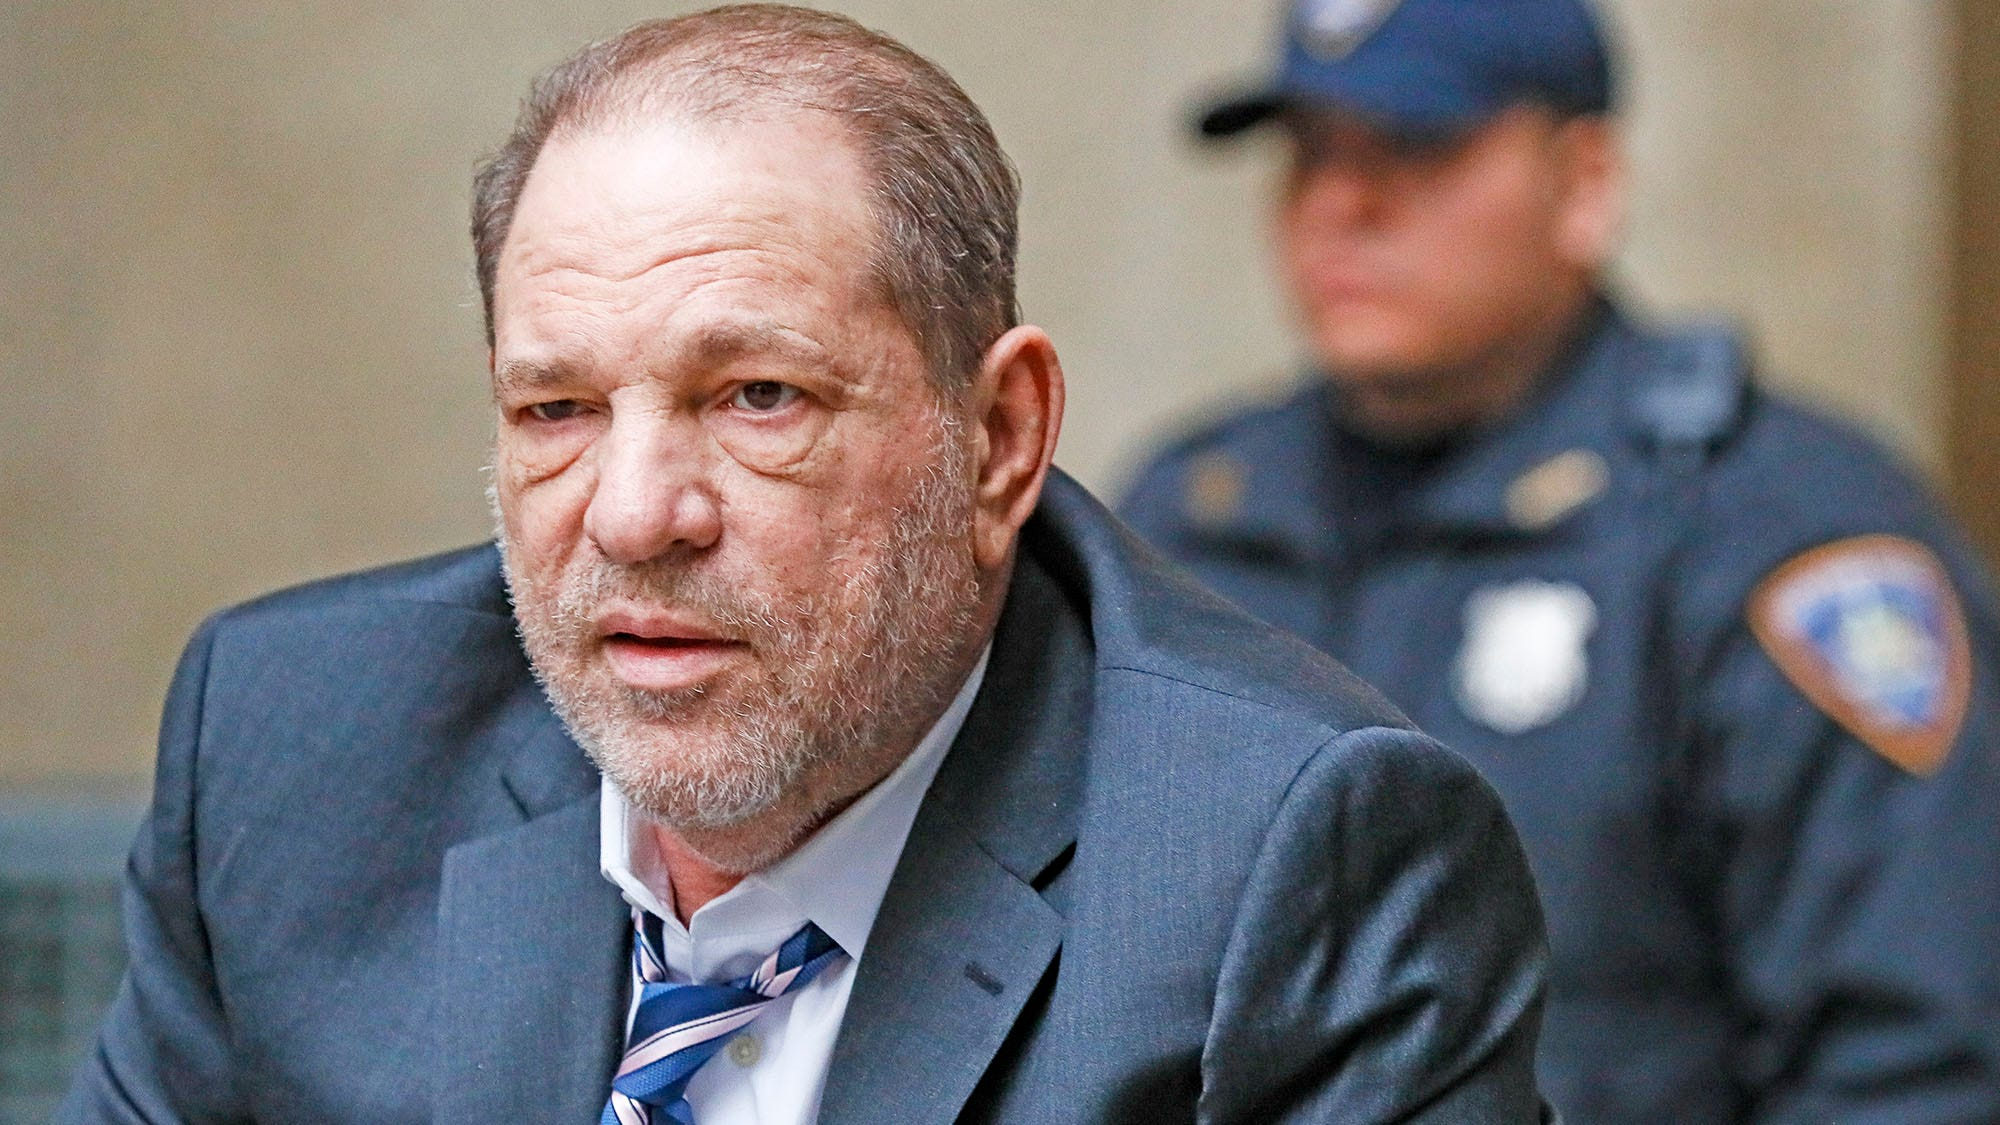 Harvey Weinstein rape case expected to end in acquittal, hung jury: Analyst